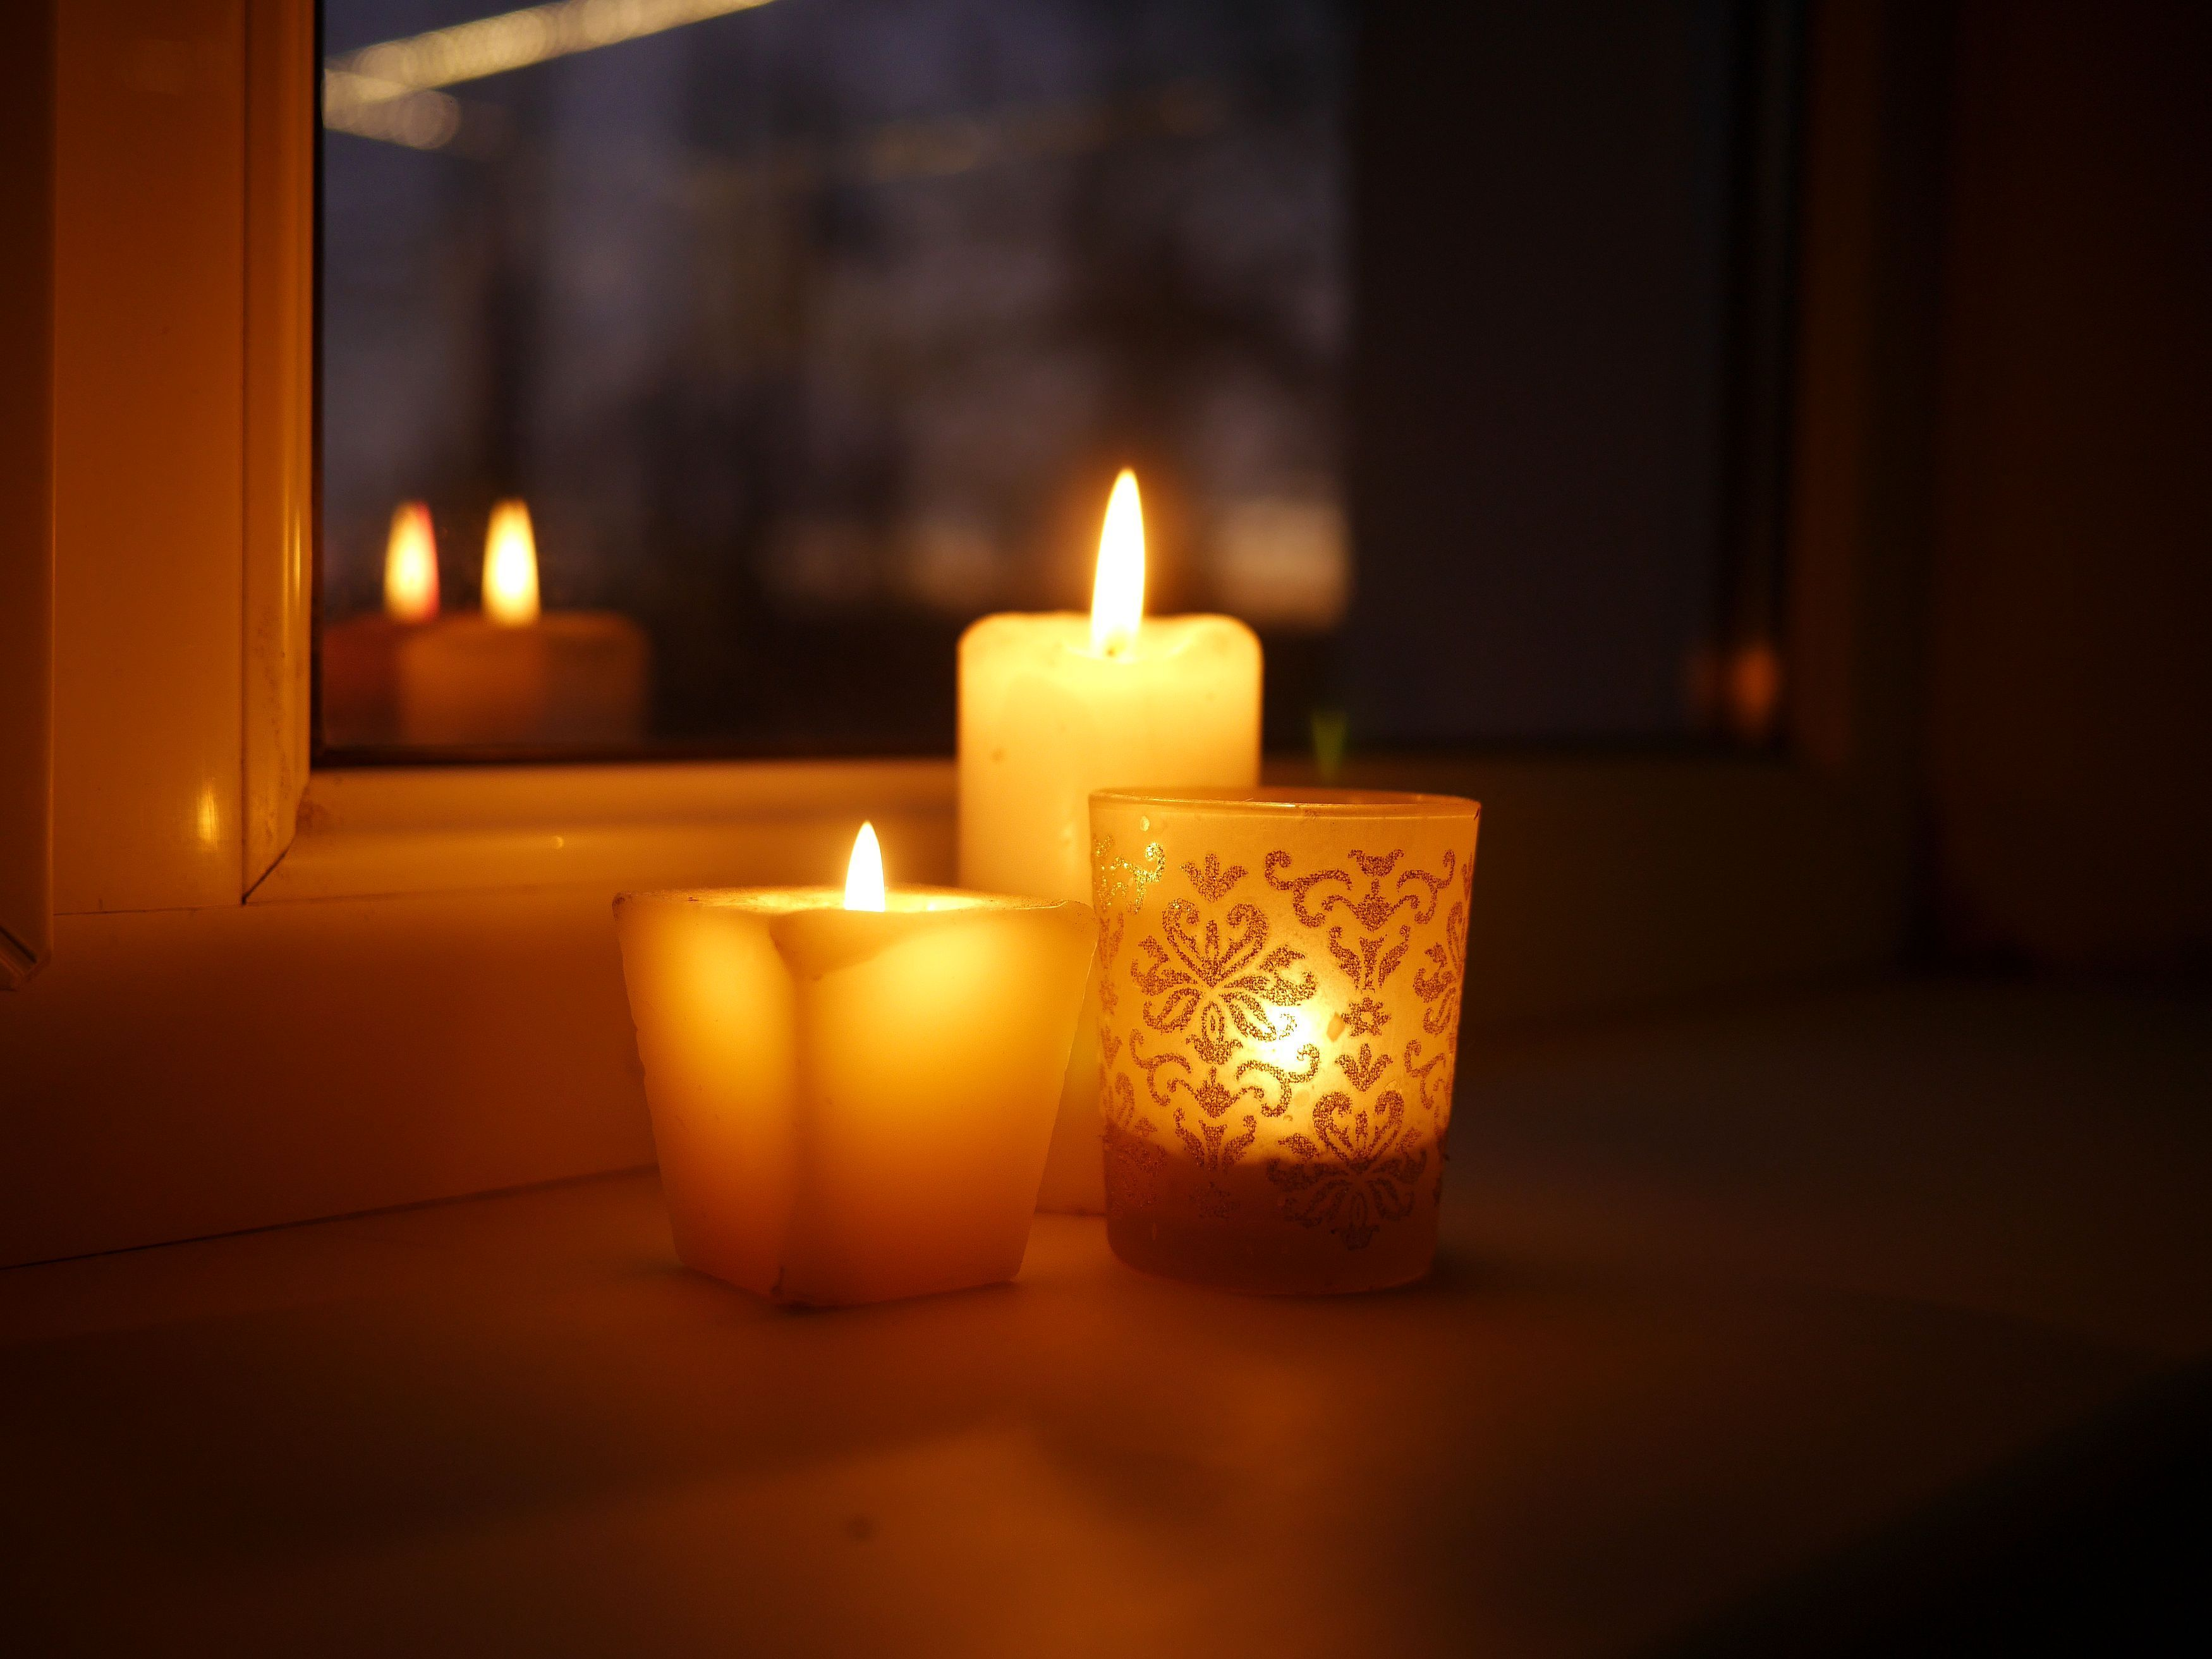 web2-candle-light-shutterstock_783210058.jpg